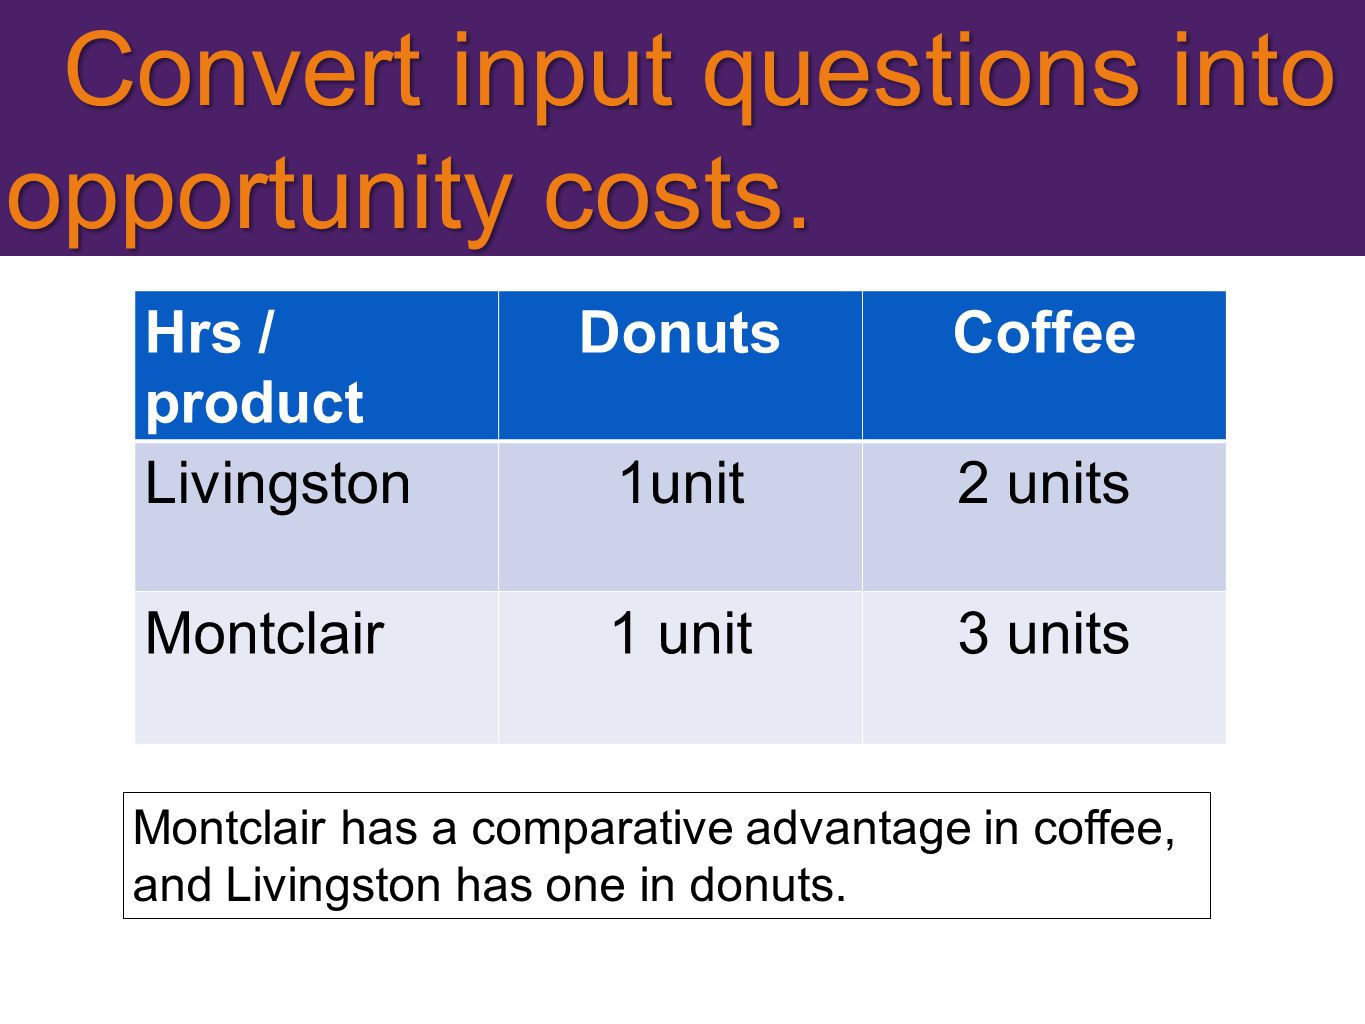 Convert input questions into opportunity costs.